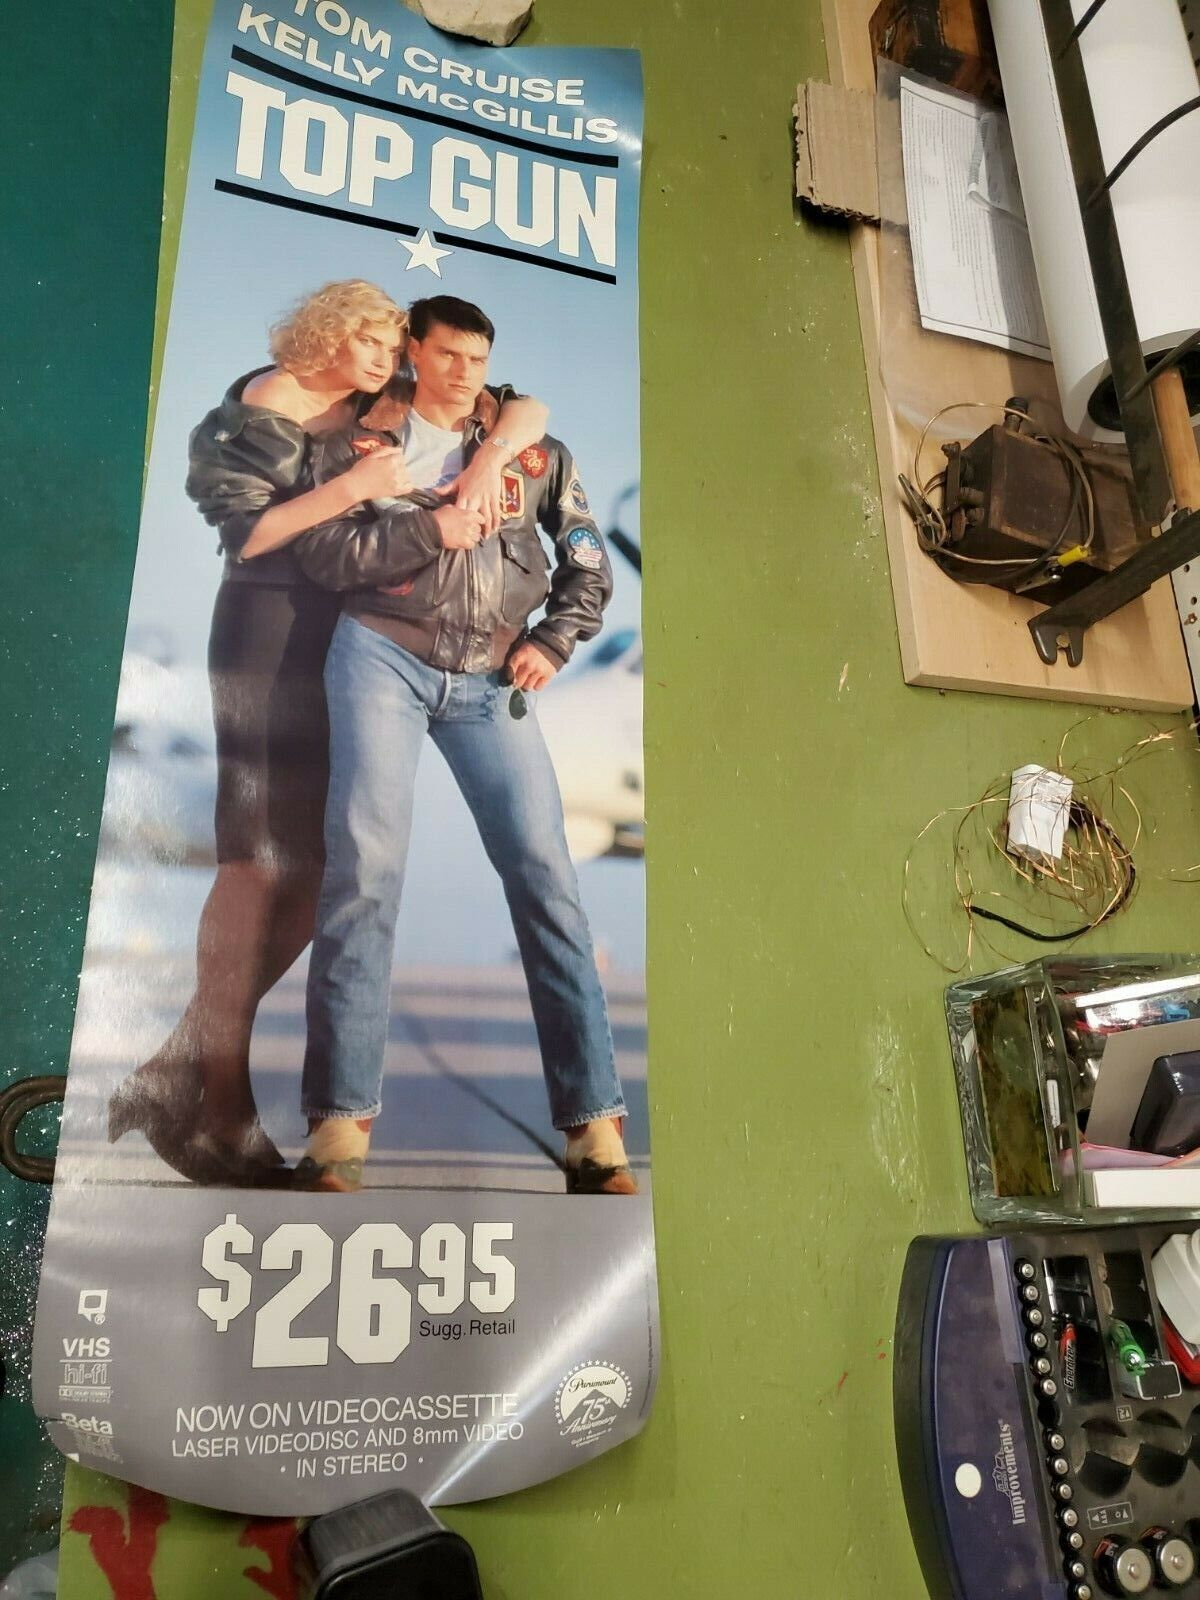 1987 Top Gun Poster Beta Laser Disc VHS And 8 Mm - $15.00